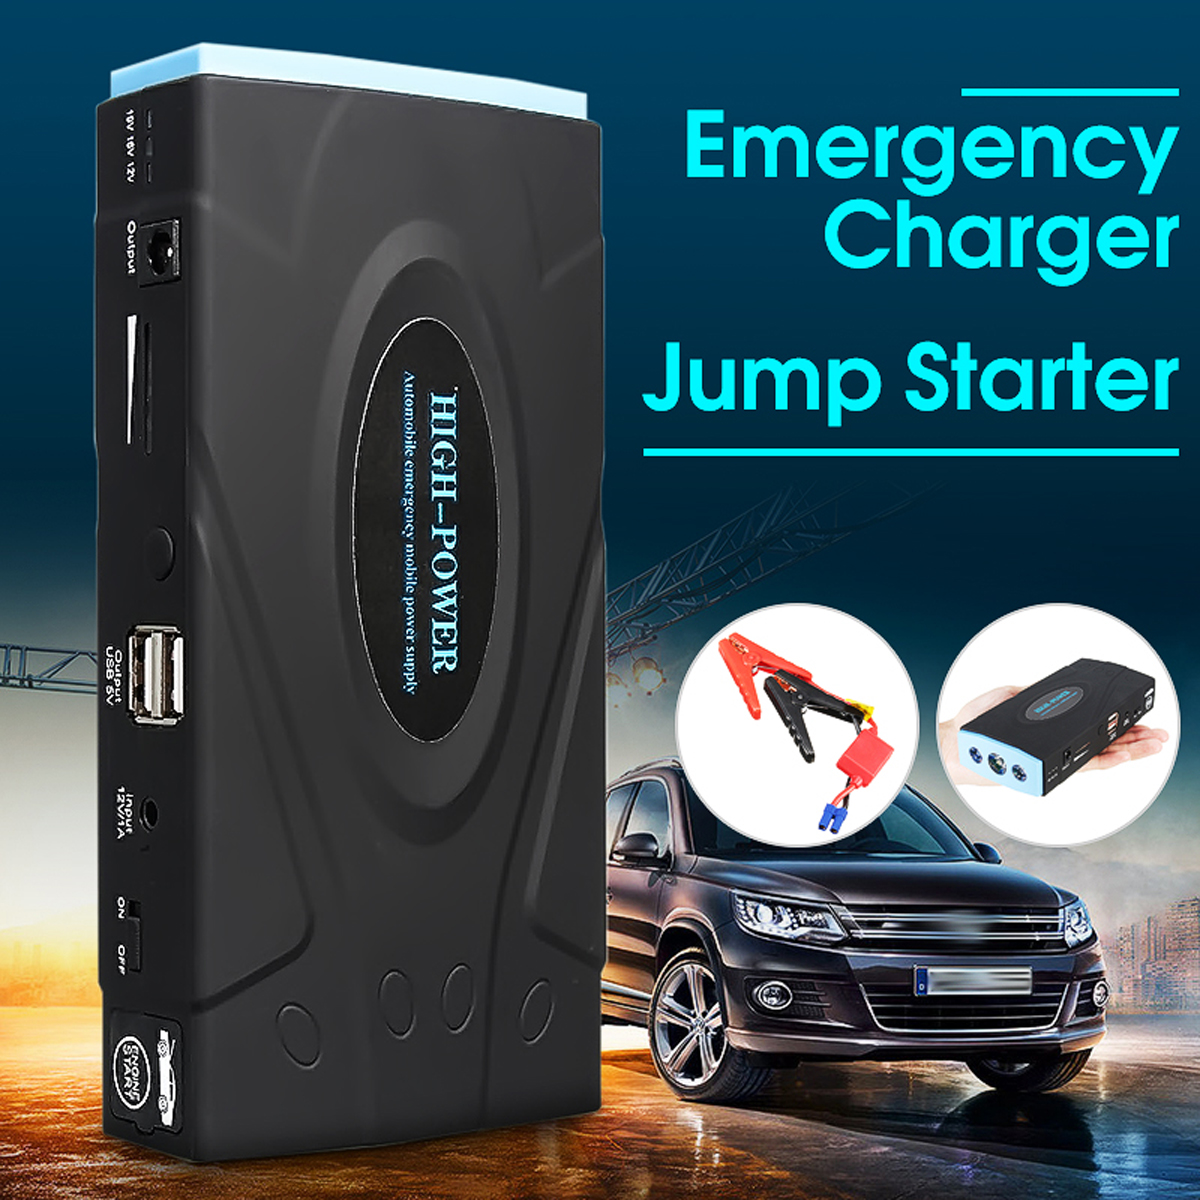 12000mAh 12V Car Portable Jump Starter Emergency Power Supply Power Bank Battery Charger стоимость